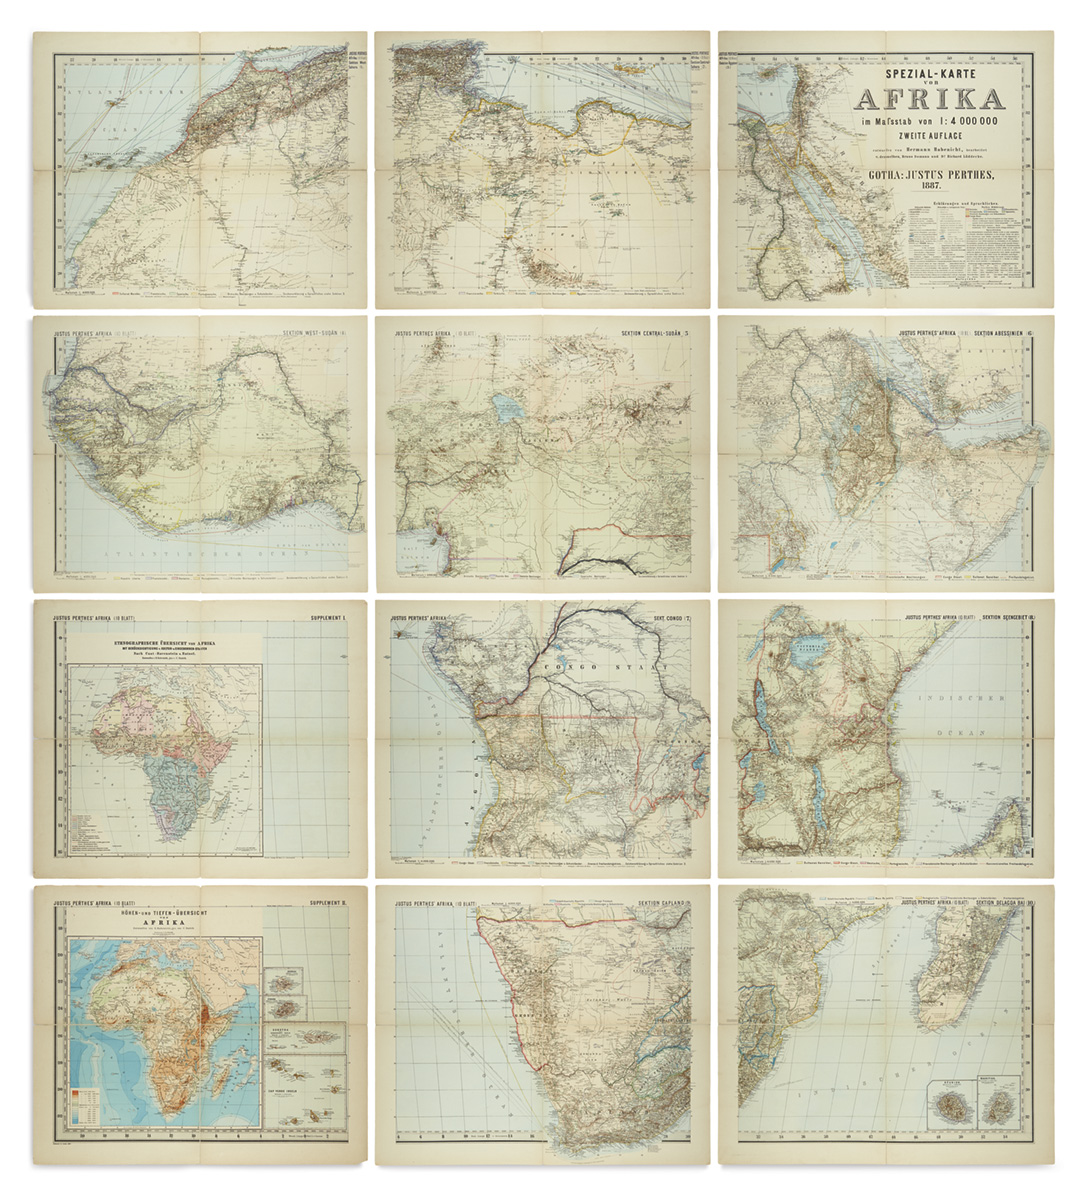 Maps & Atlases, Natural History & Color Plate Books